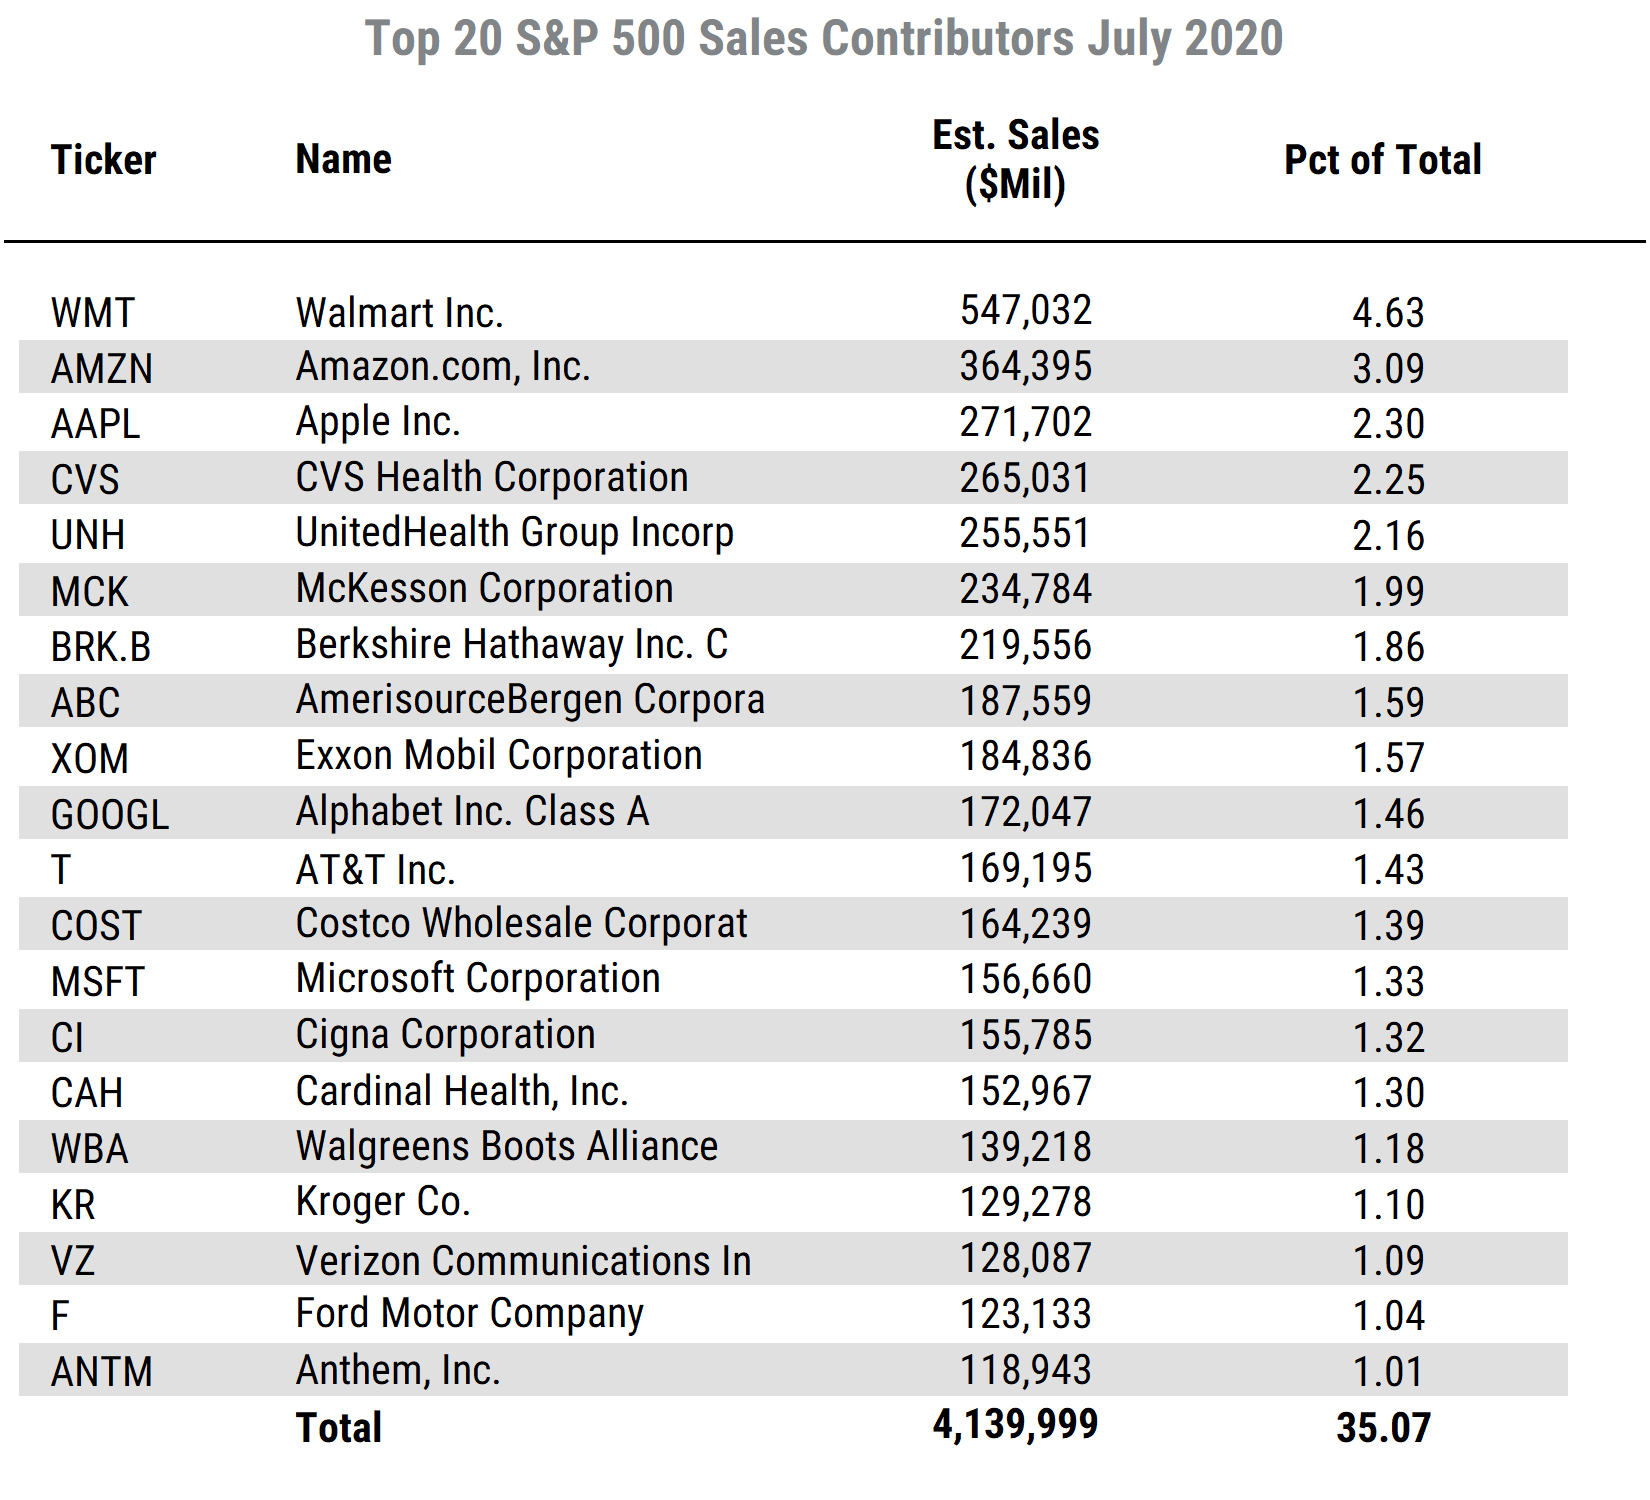 List of Top 20 SP500 Sales